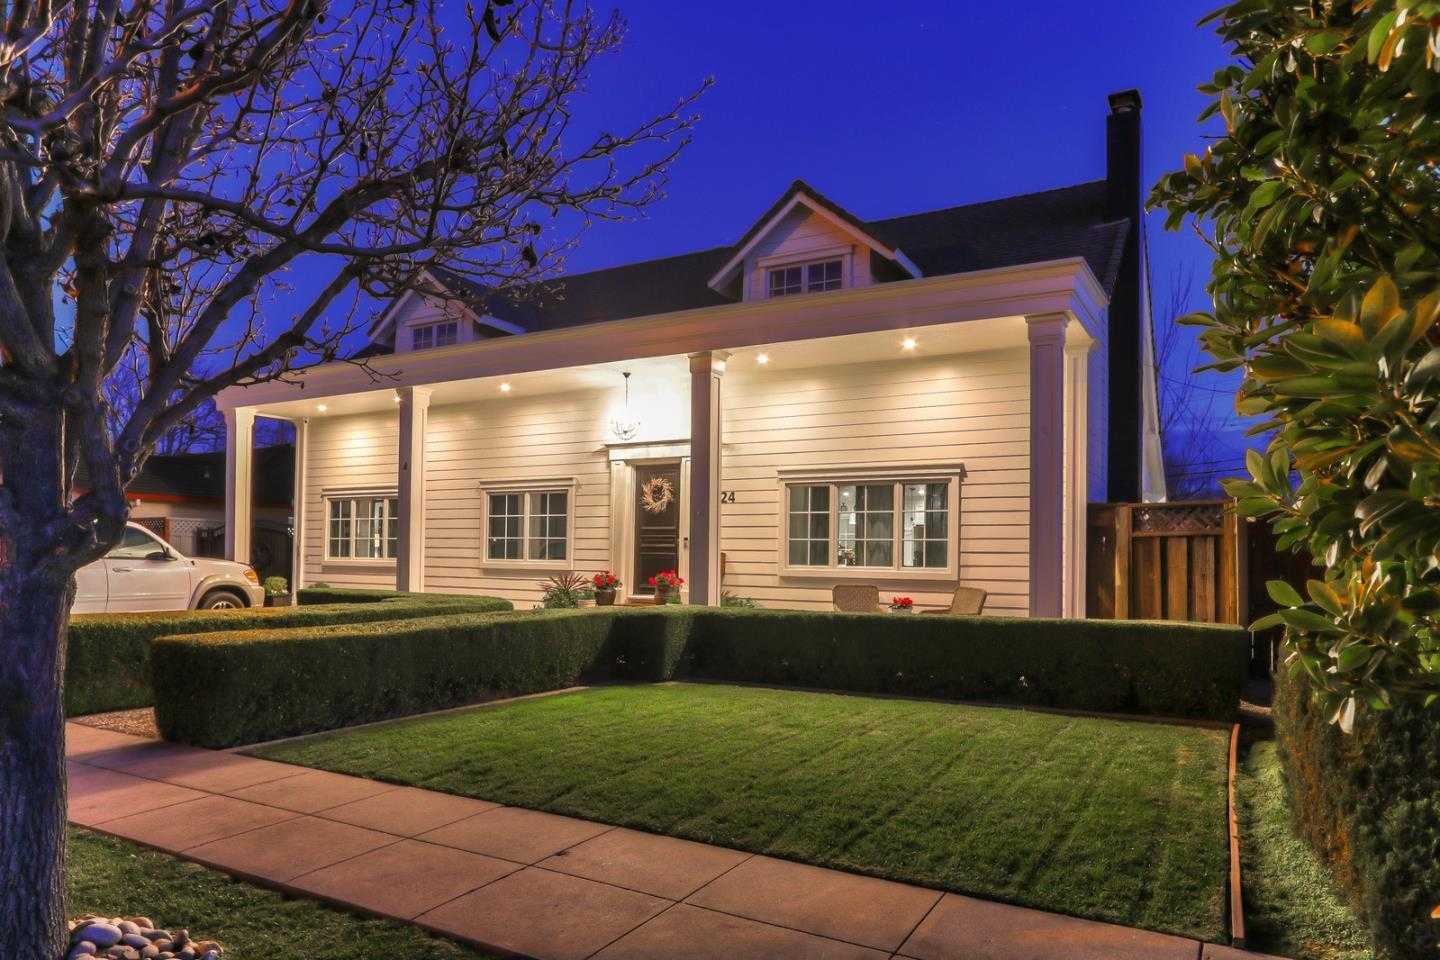 $1,648,000 - 4Br/3Ba -  for Sale in San Jose